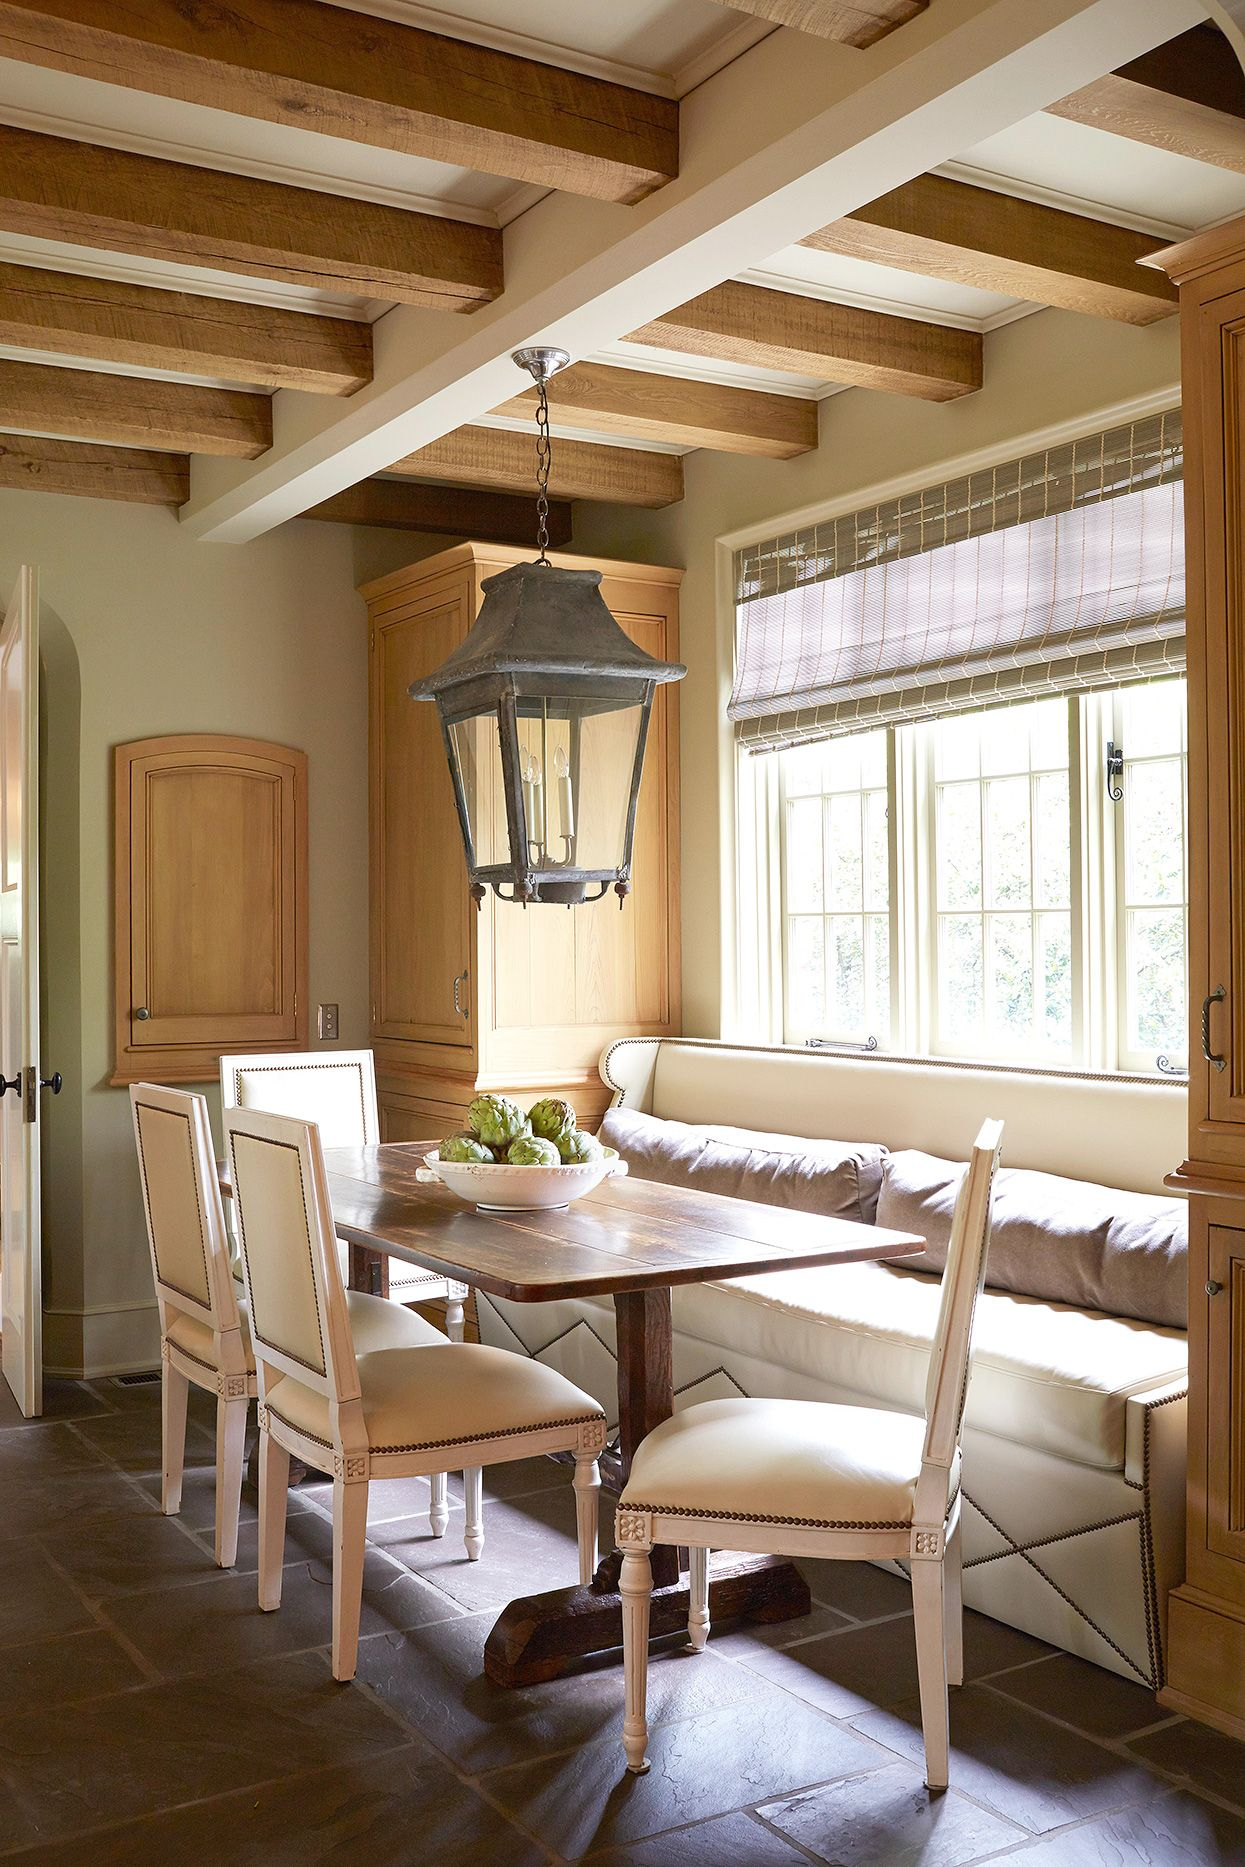 Our Best Breakfast Room Banquette Ideas Dining Banquette Bench